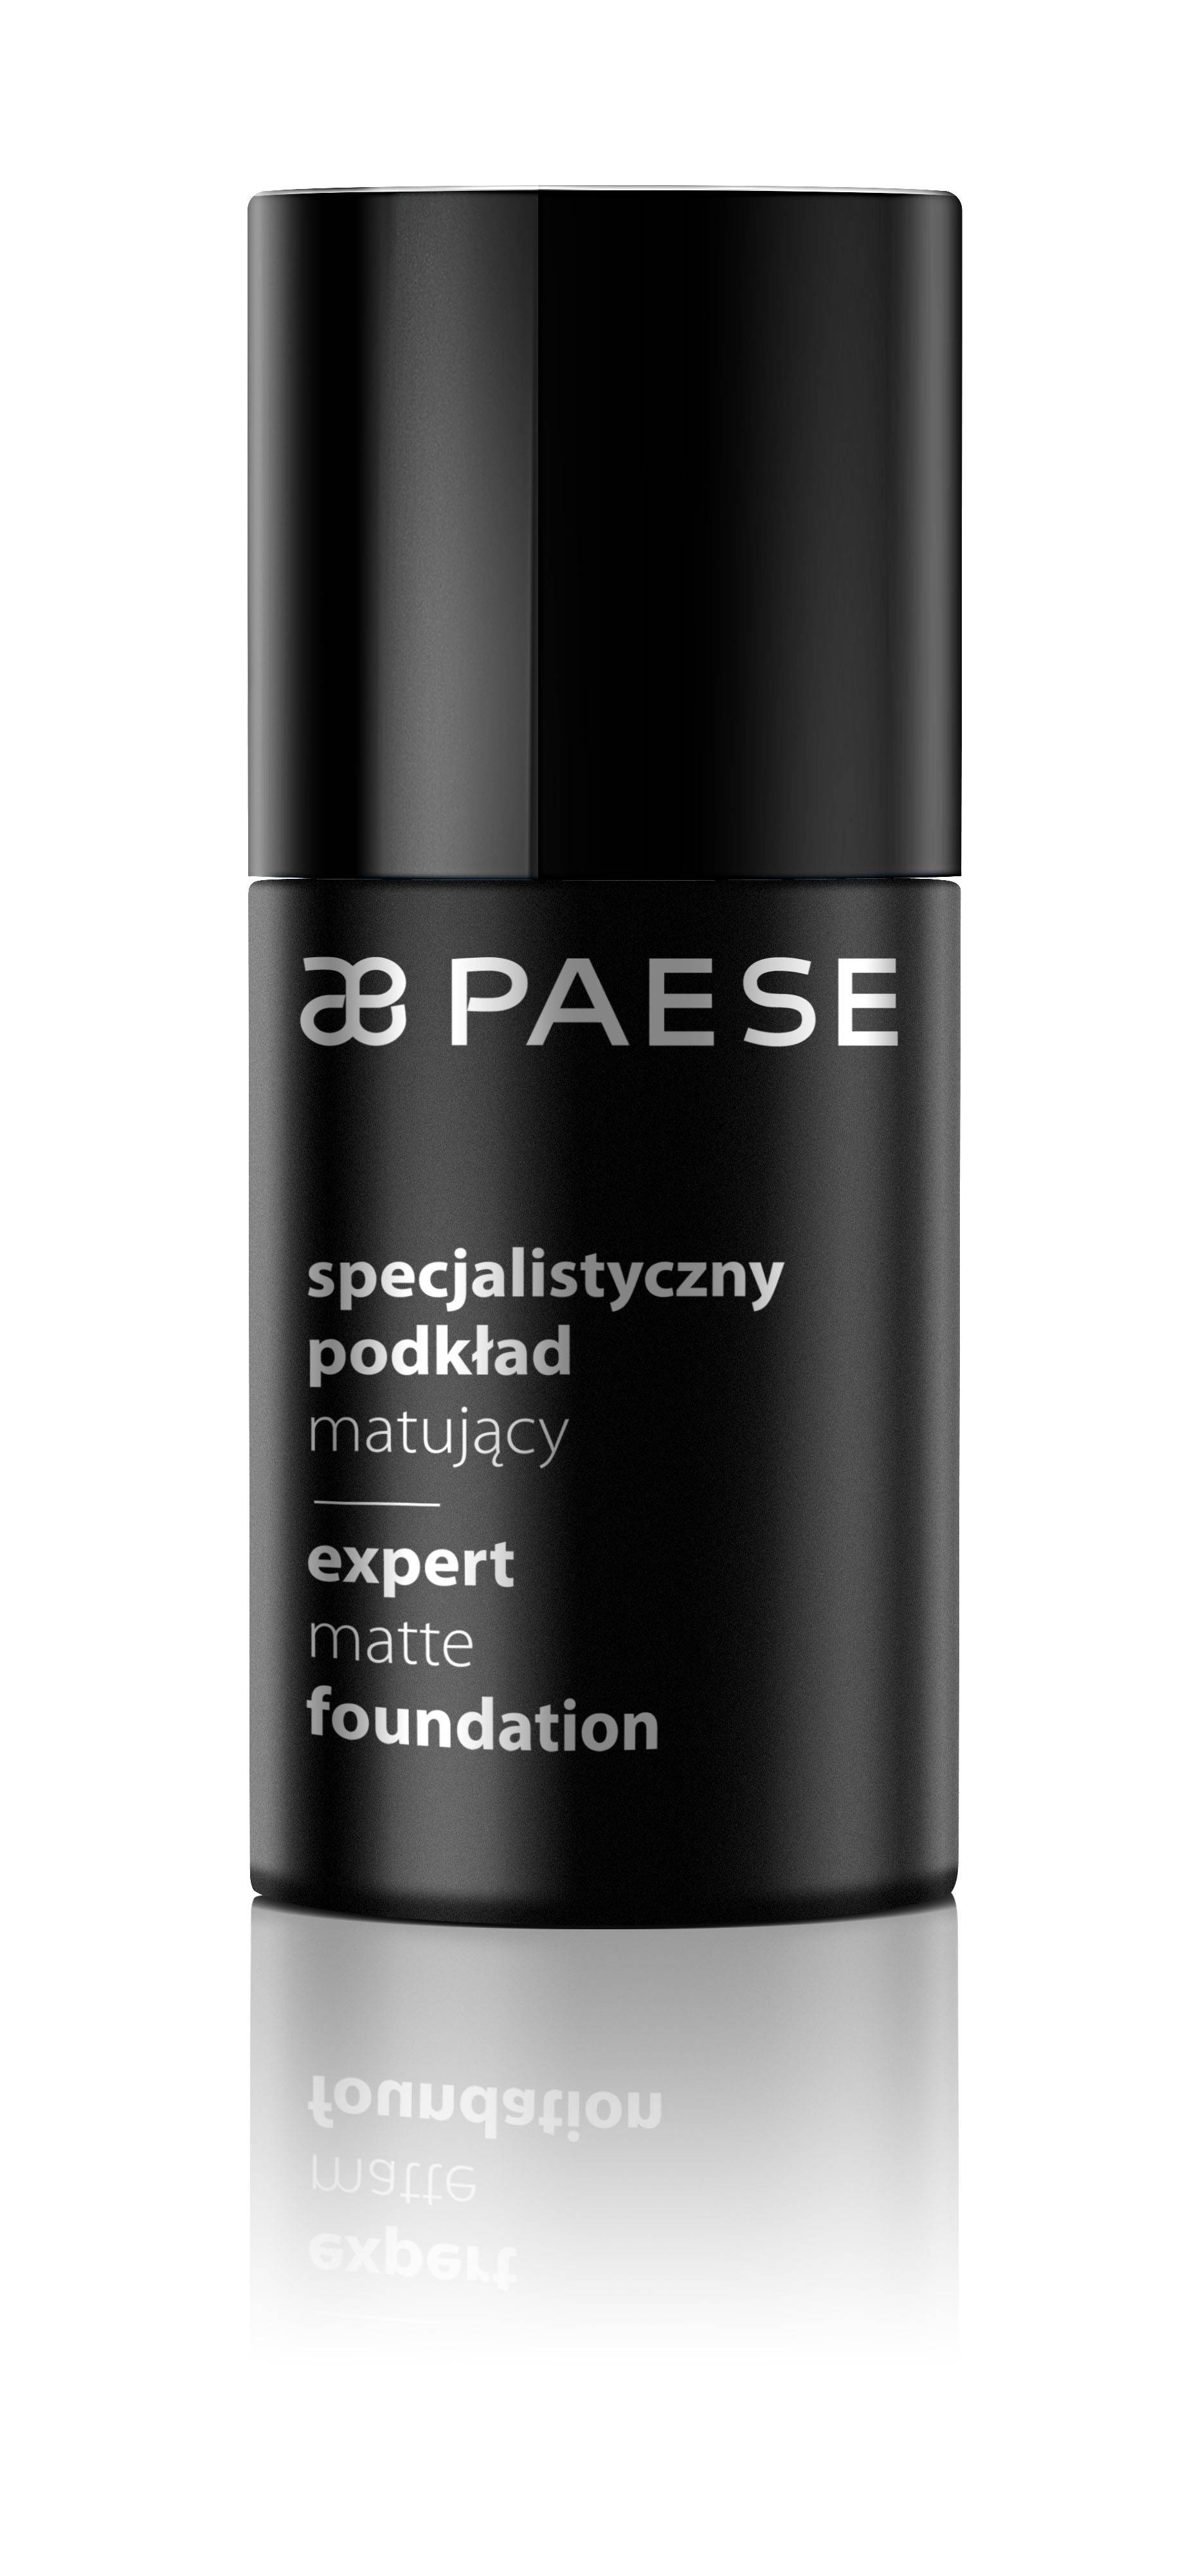 expert%20matte%20foundation.jpg